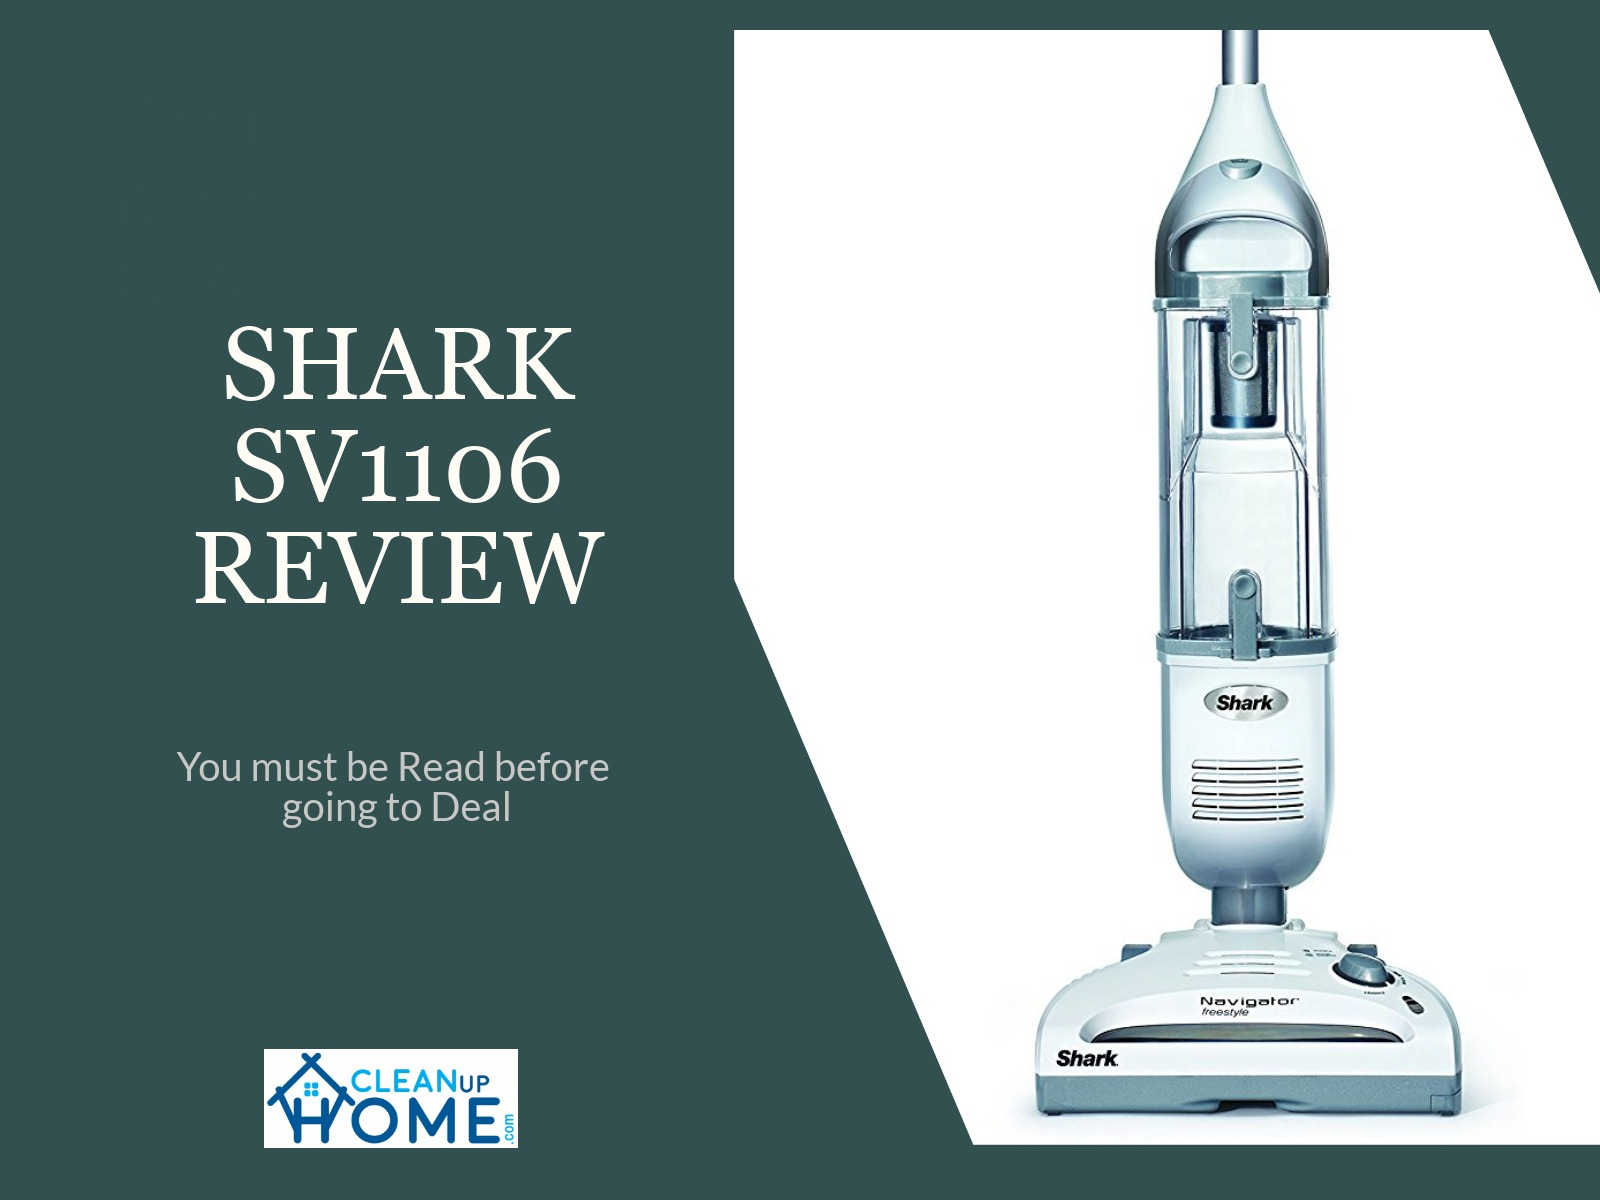 Shark SV1106 Navigator Freestyle